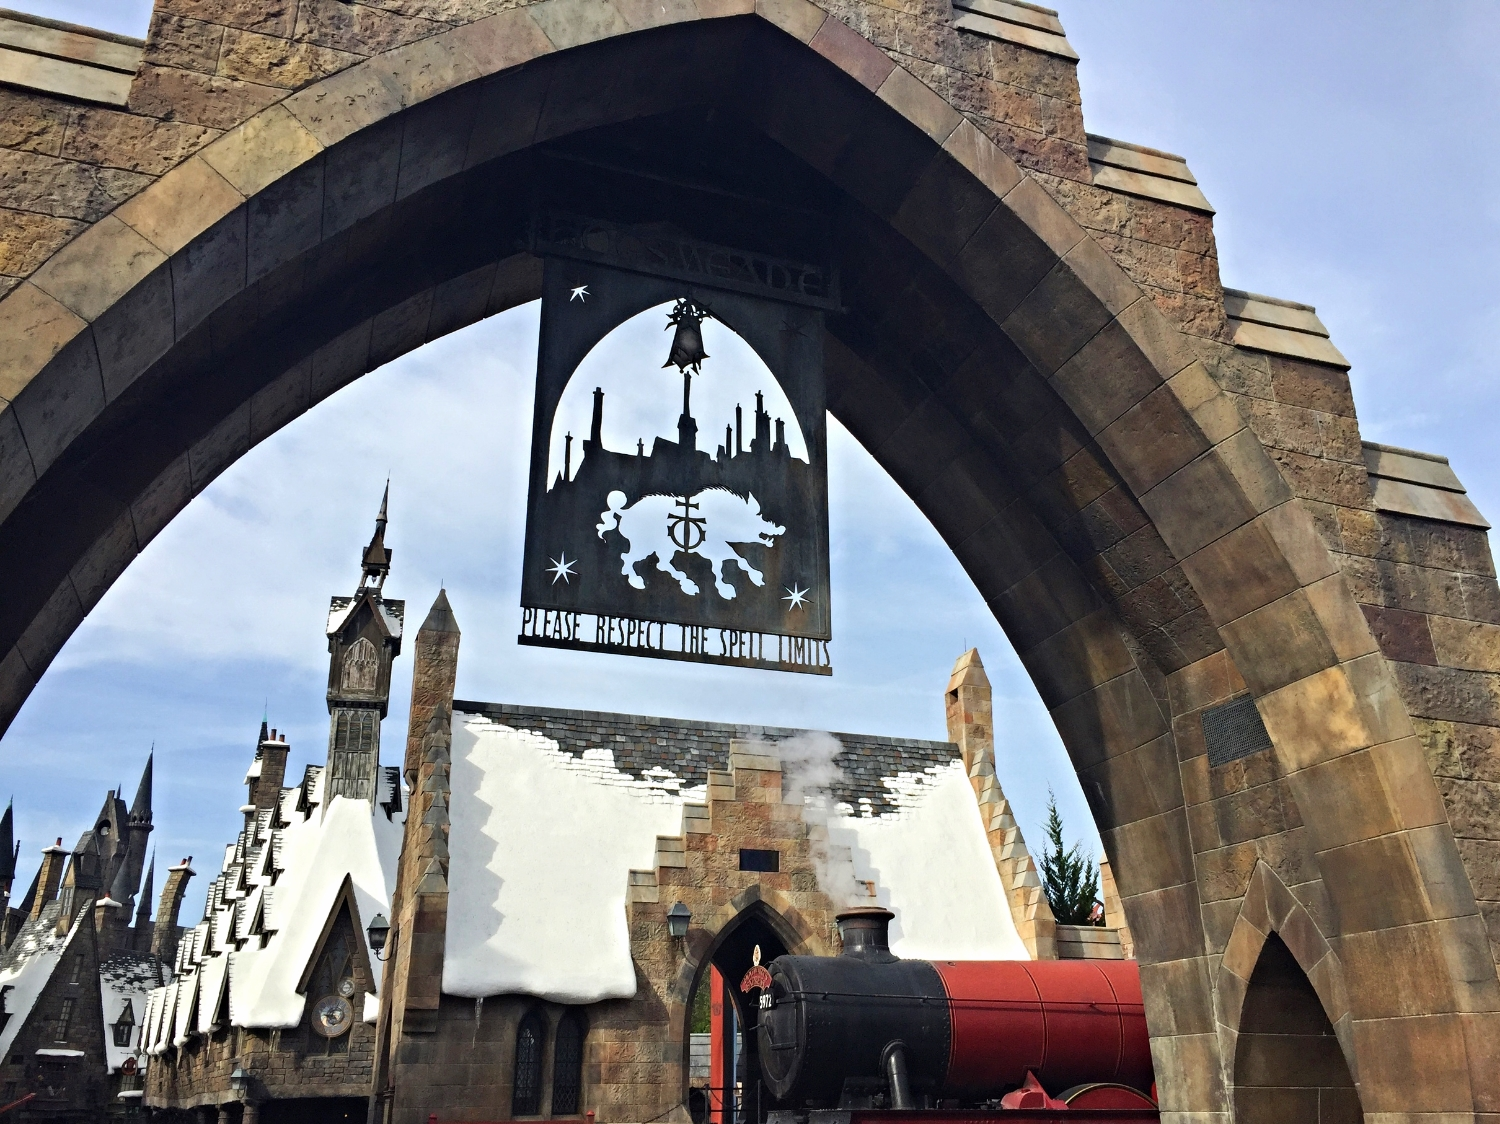 The entrance of The Wizarding World of Harry Potter - Hogsmeade in Islands of Adventure.